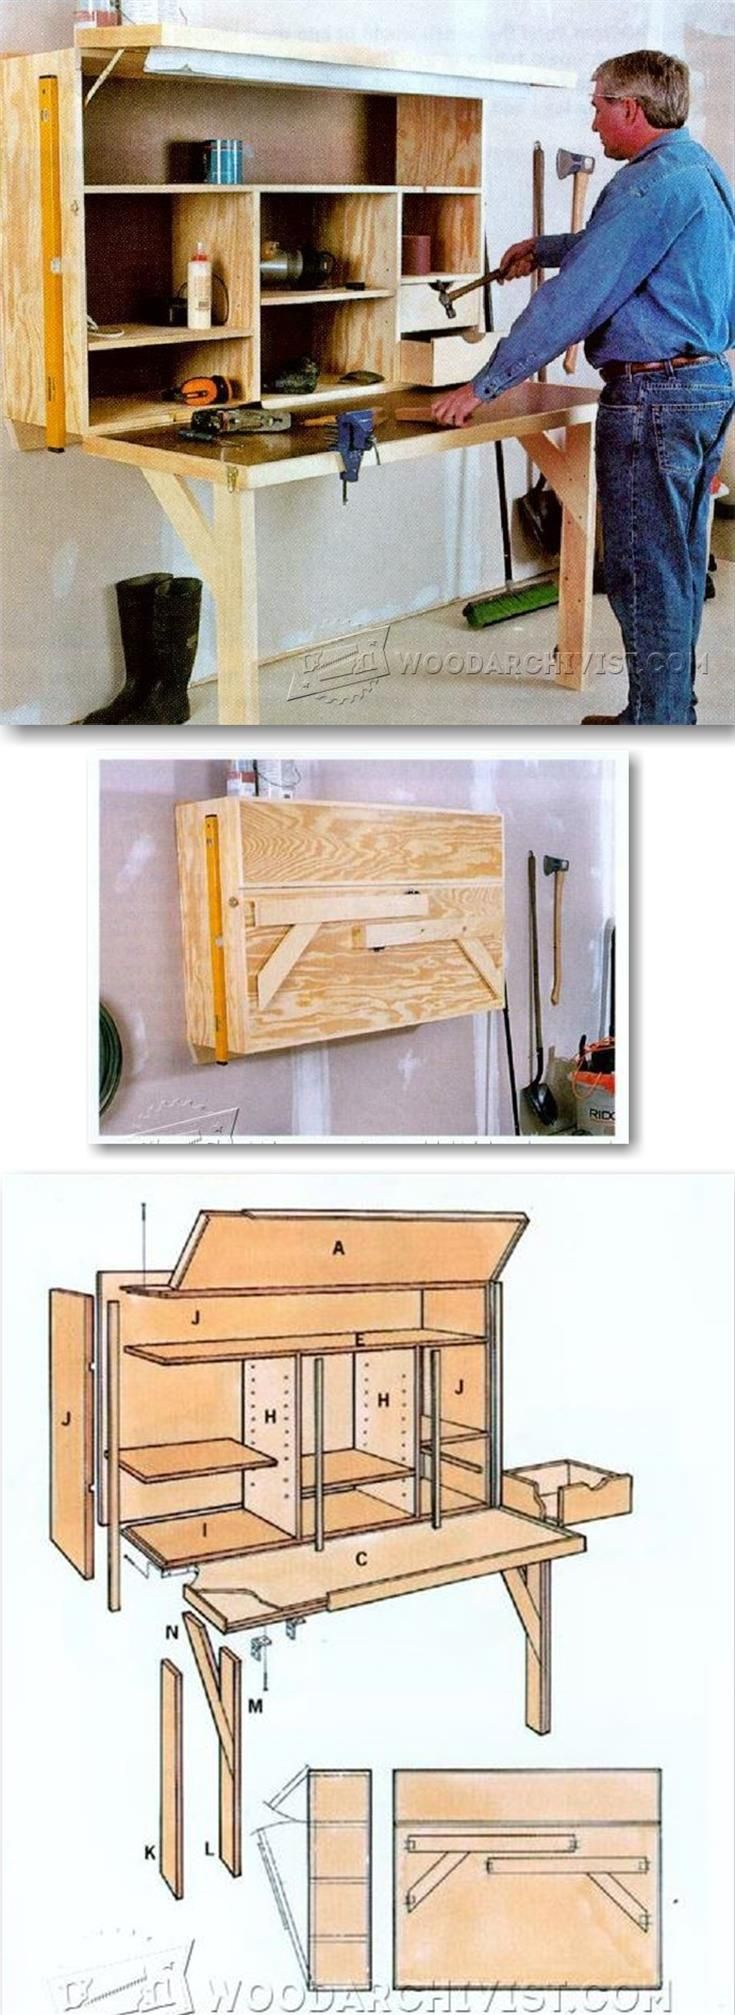 Fold Down Workbench Plans - Workshop Solutions Projects, Tips and Tricks | WoodArchivist.com